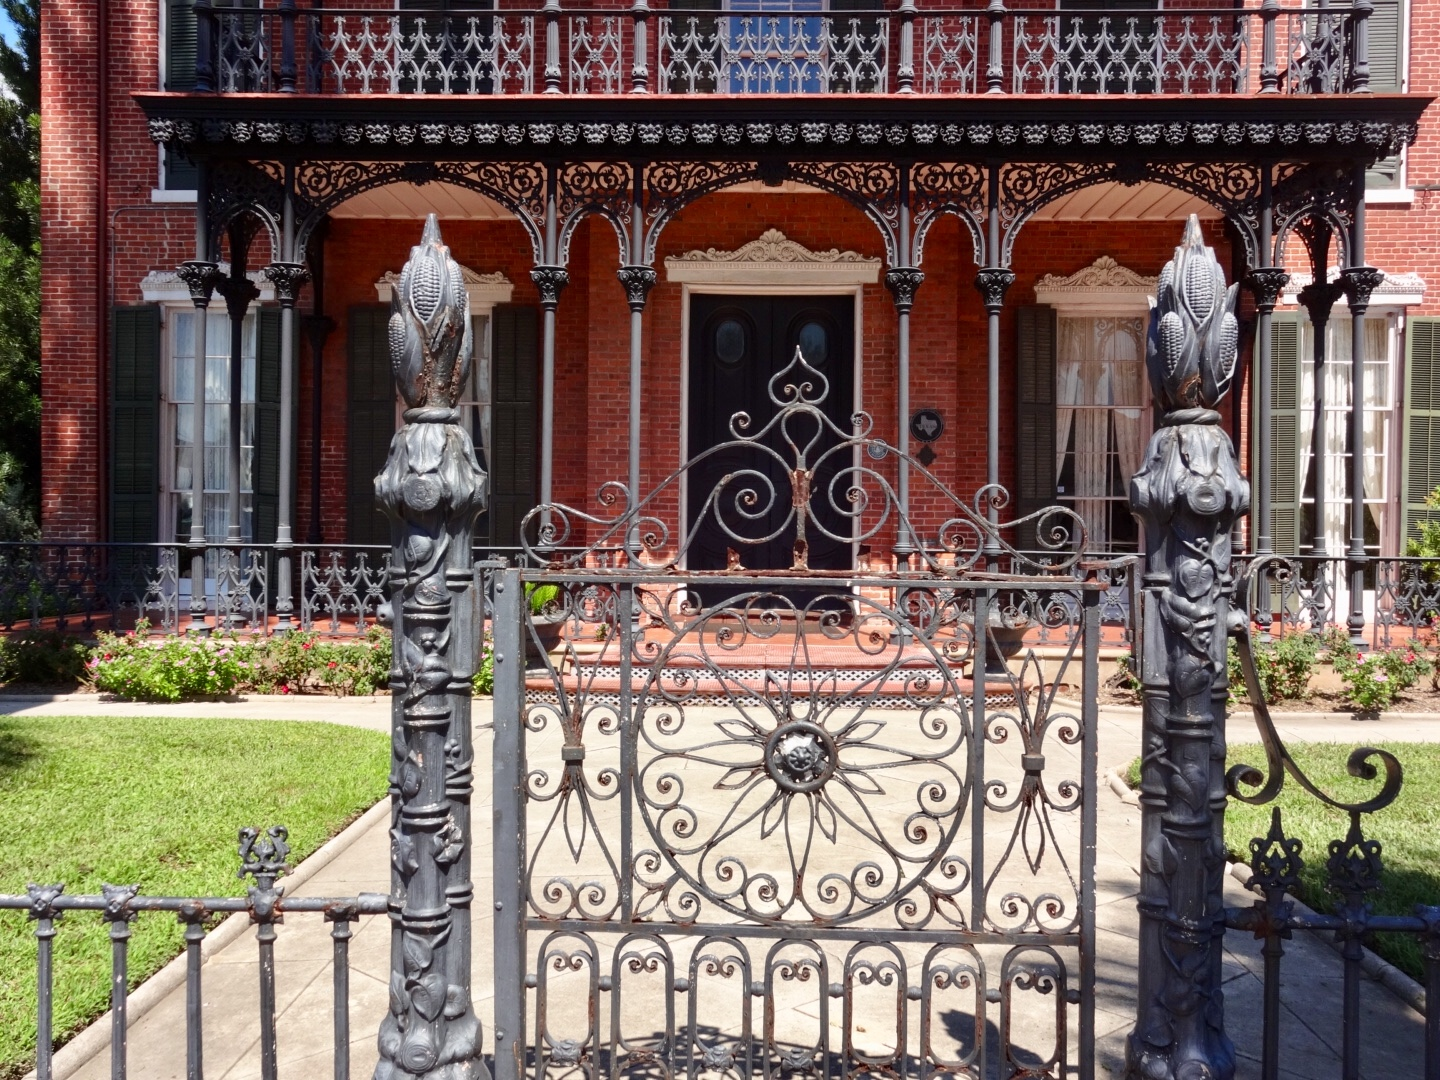 Original wrought ironwork. I imagine the moment those people stood gathered out there and found out they were free. Photo taken in 2018 by me.